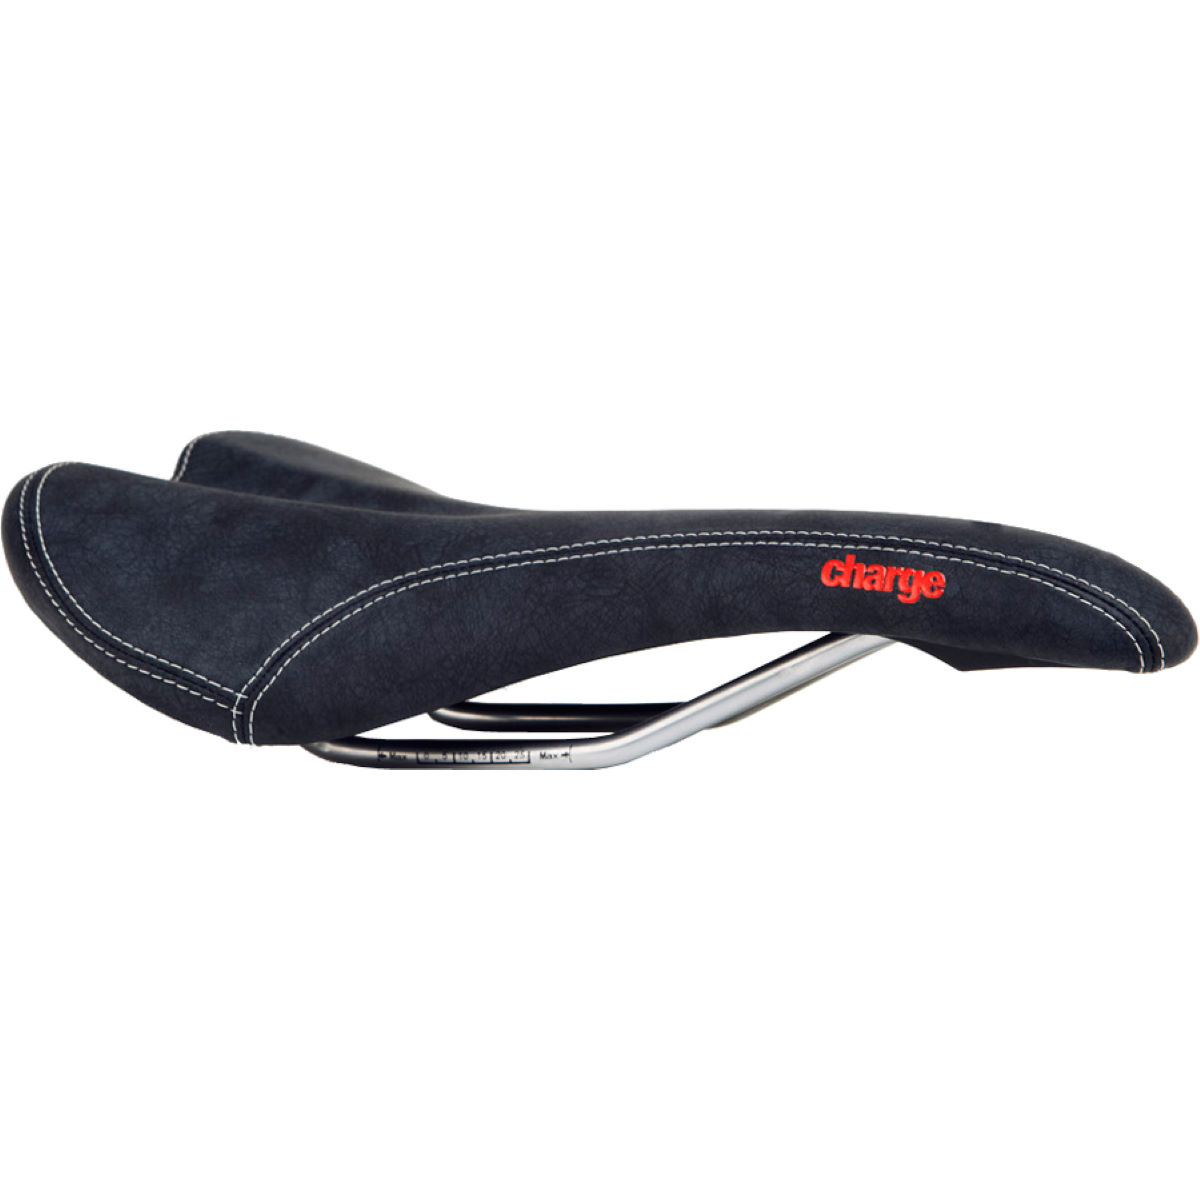 Charge Spoon Saddle with Cromo Rails